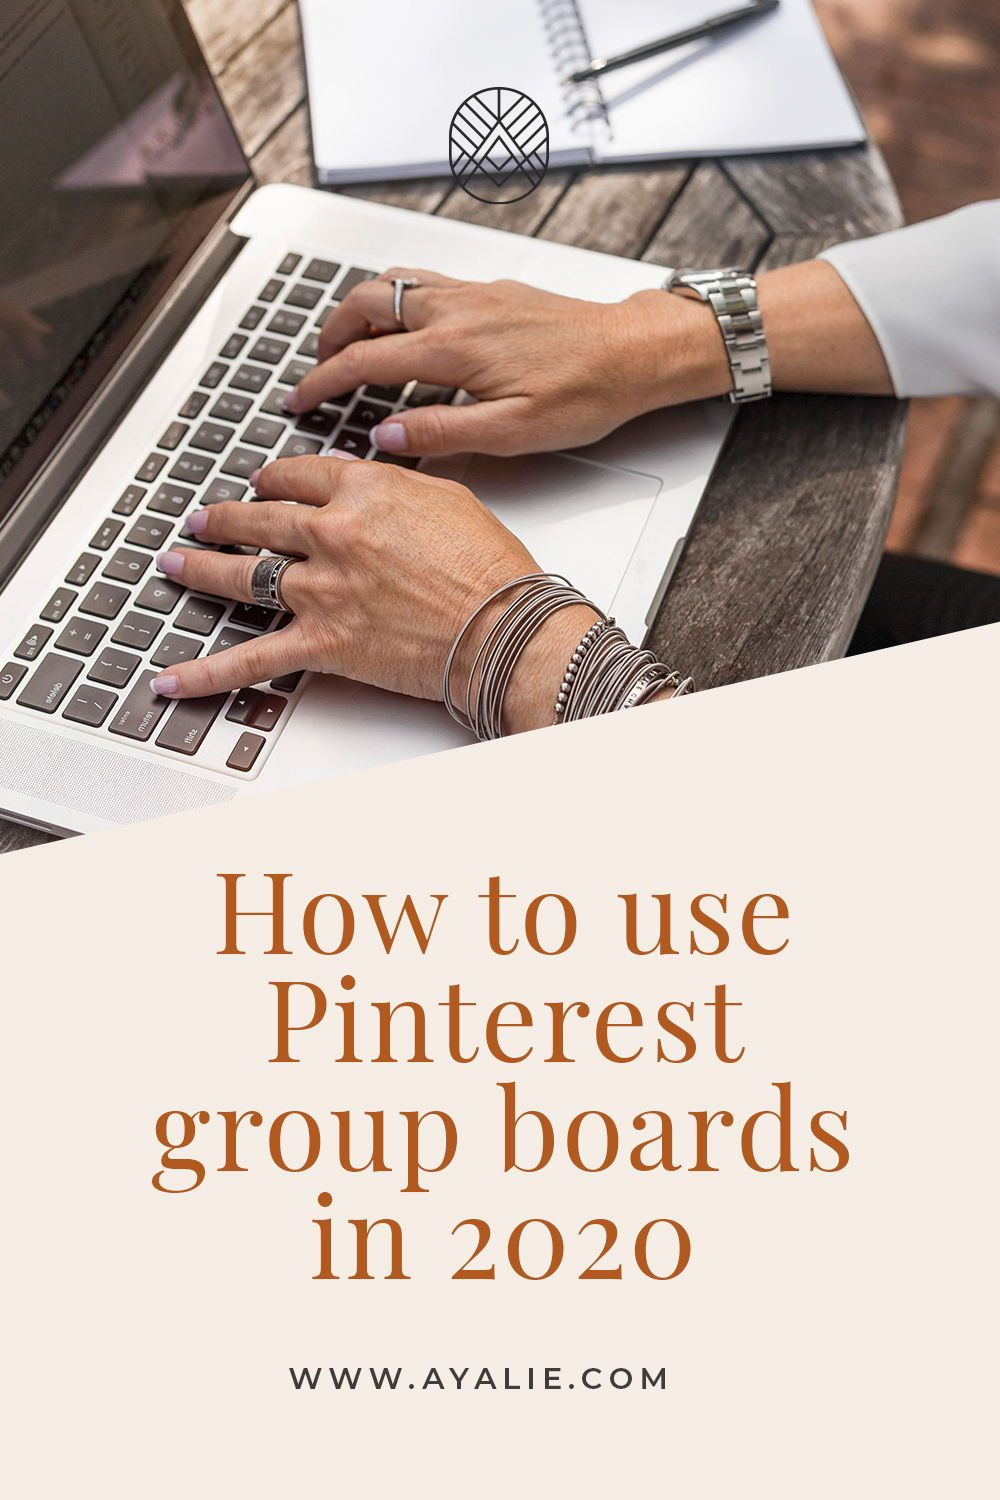 How To Use Pinterest Group Boards In 2020 Ayalie Pinterest Marketing For Service Ba Pinterest Marketing Strategy Online Business Strategy Pinterest Marketing